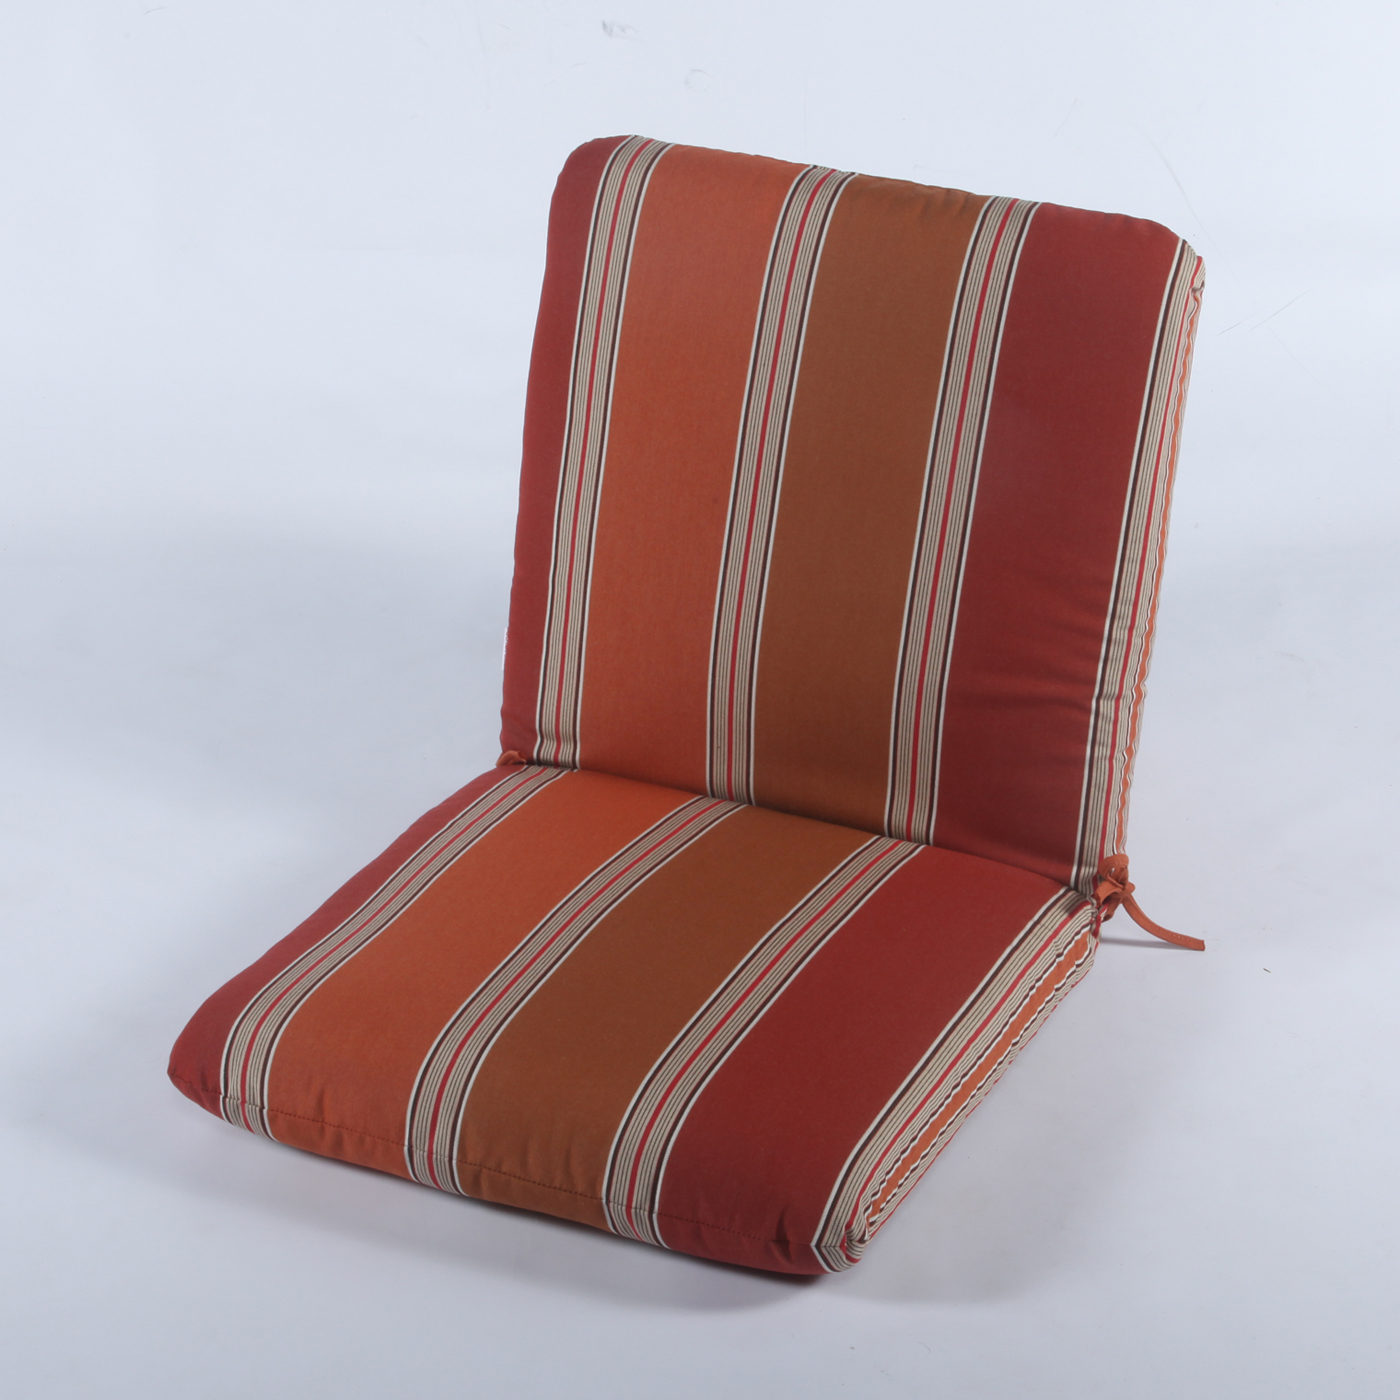 sunbrella chair cushions